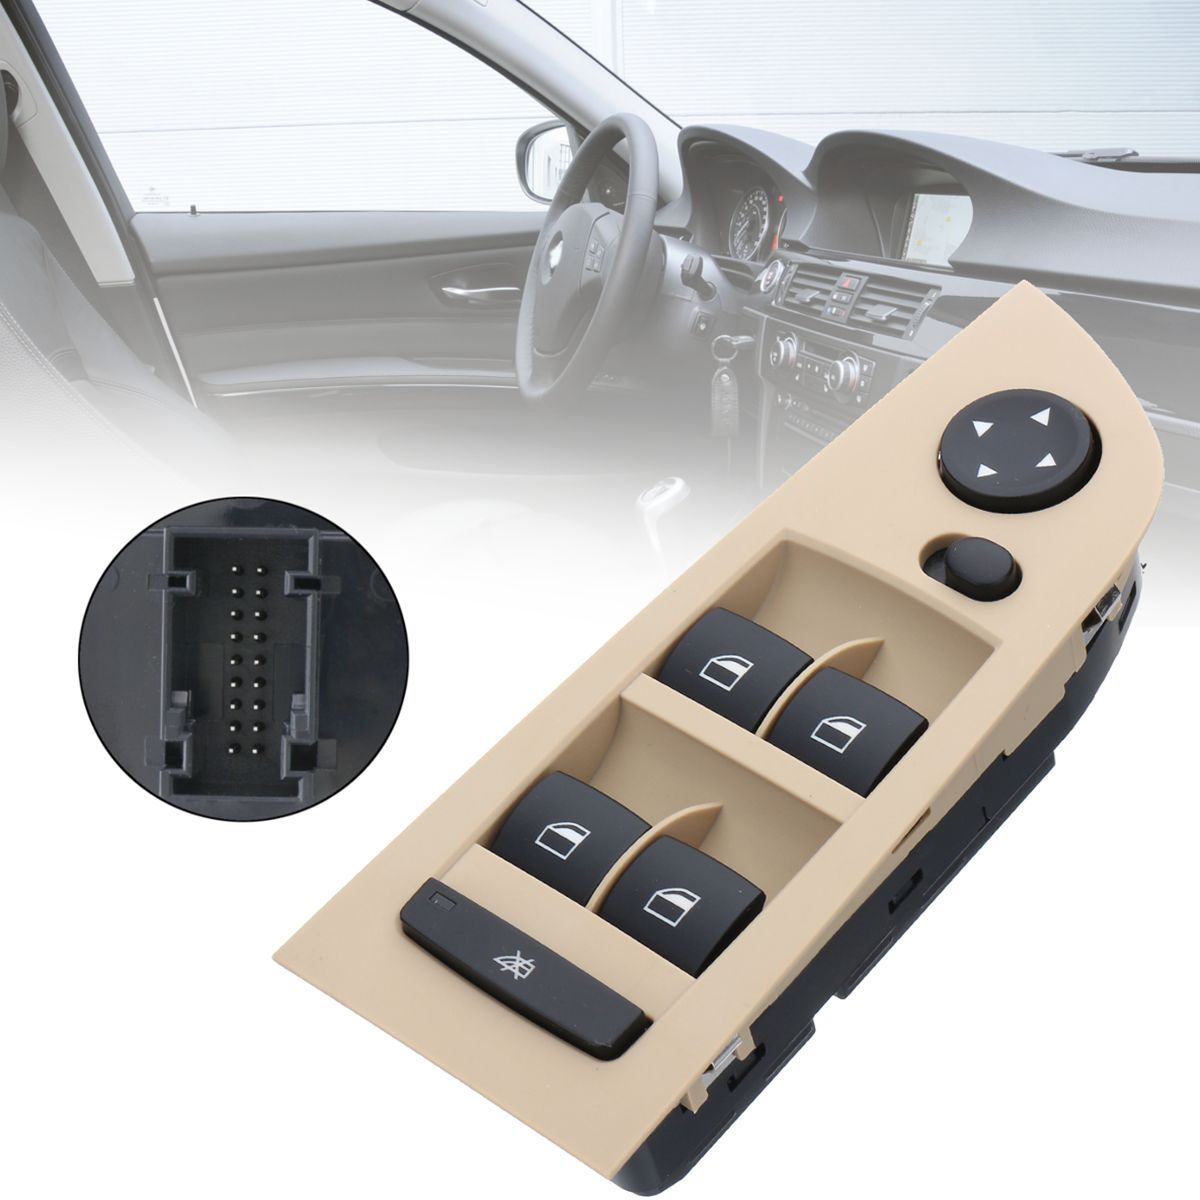 #61319217329 Front Window Mirror Master Control Switch Unit For BMW E90 LCI 318i 320i 325i 335i 330i 2004 2005 2006 2007 2008